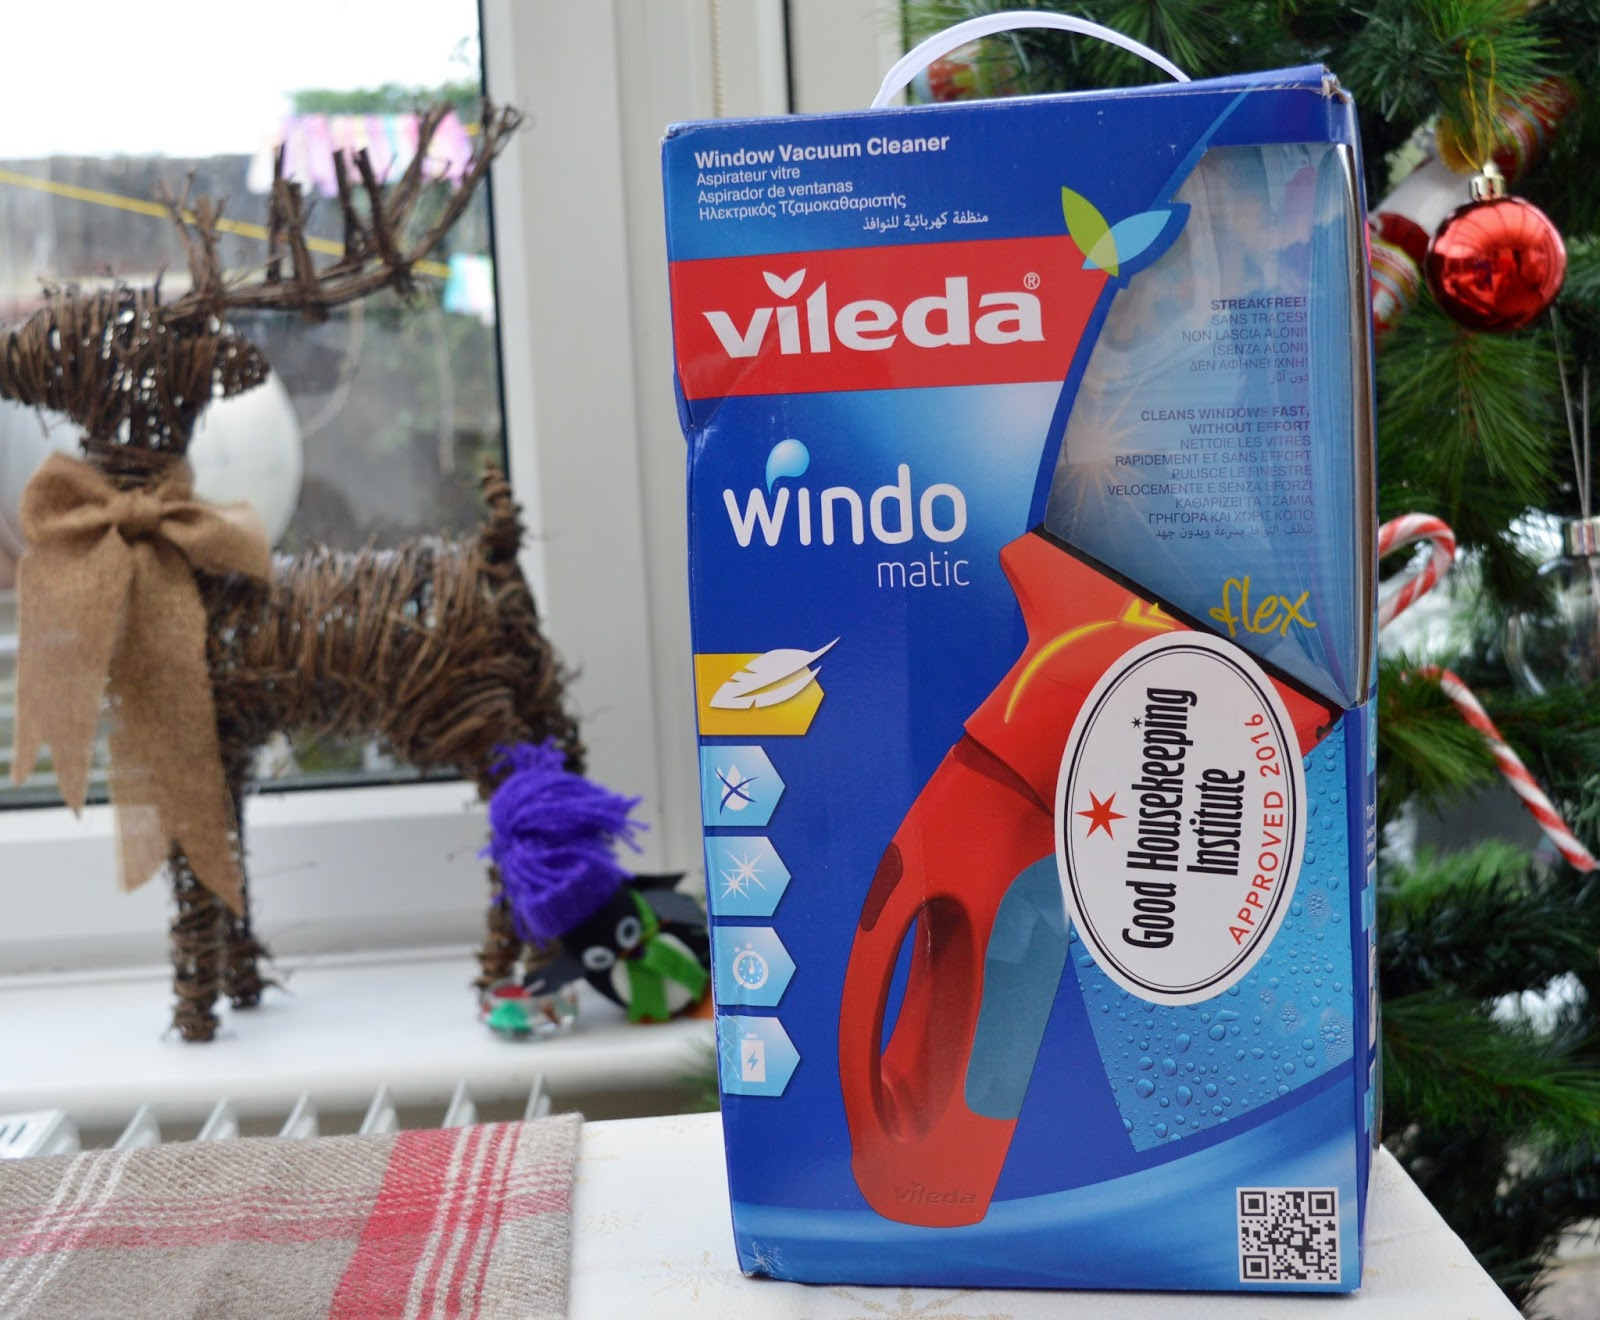 Vileda Windomatic Window Vacuum Review | How to achieve streak free windows